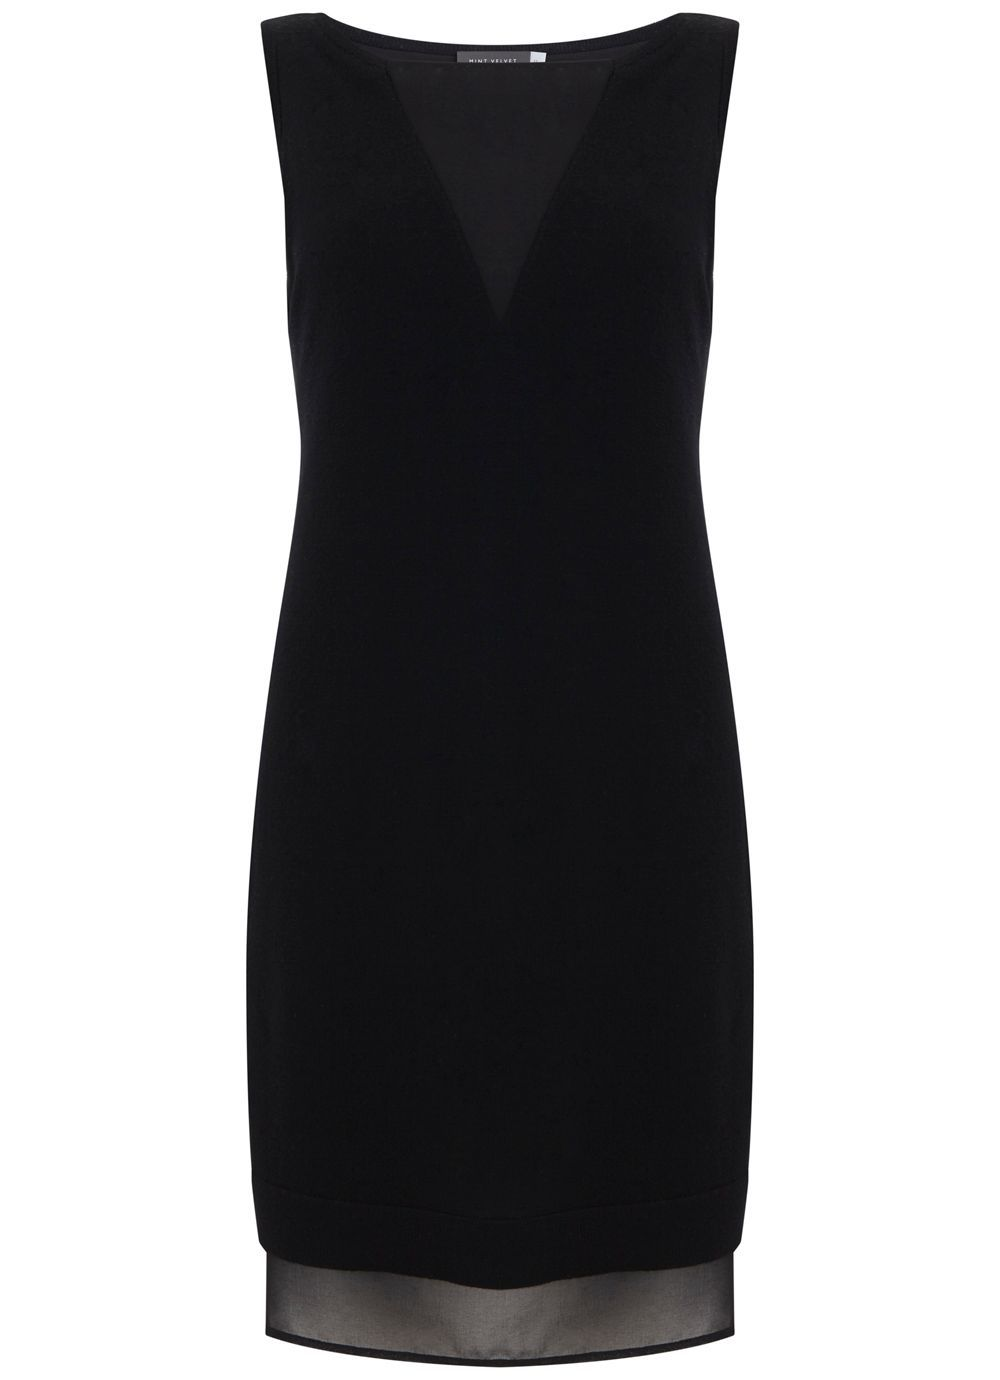 Black Double Layer Longline Tunic, Black - style: tunic; neckline: slash/boat neckline; pattern: plain; sleeve style: sleeveless; predominant colour: black; occasions: evening, occasion; length: just above the knee; fit: body skimming; fibres: wool - 100%; sleeve length: sleeveless; pattern type: fabric; texture group: other - light to midweight; season: s/s 2016; wardrobe: event